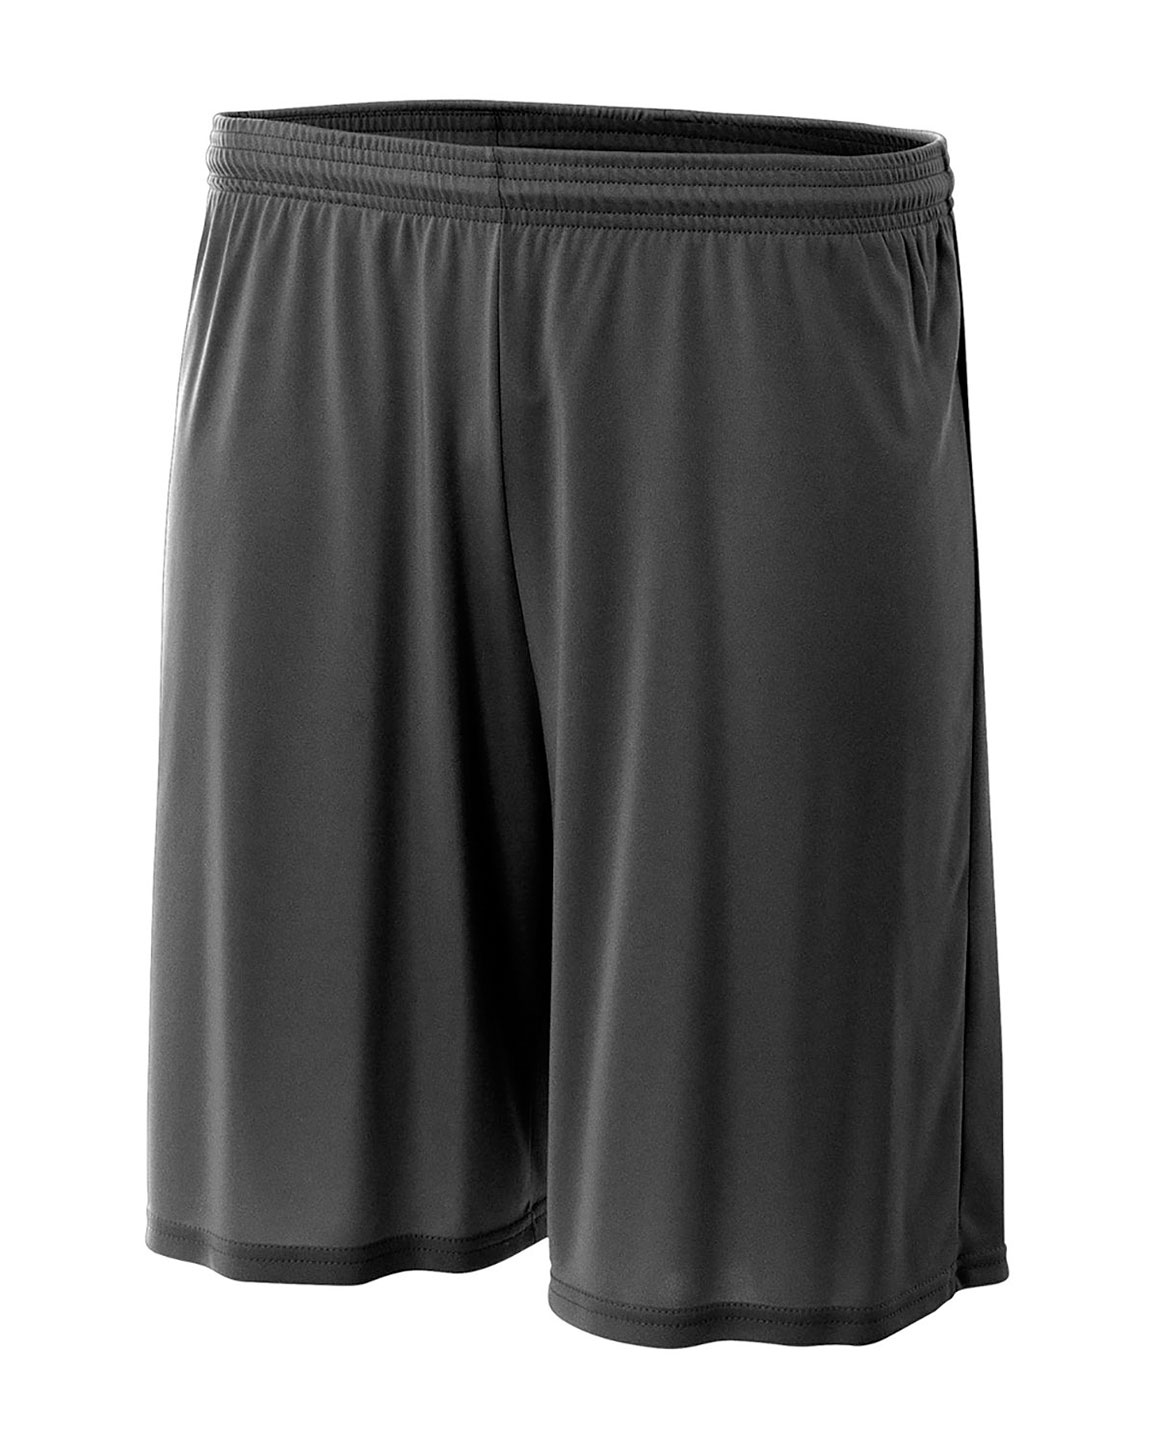 A4 N5244 Adult 7 Inseam Cooling Performance Shorts